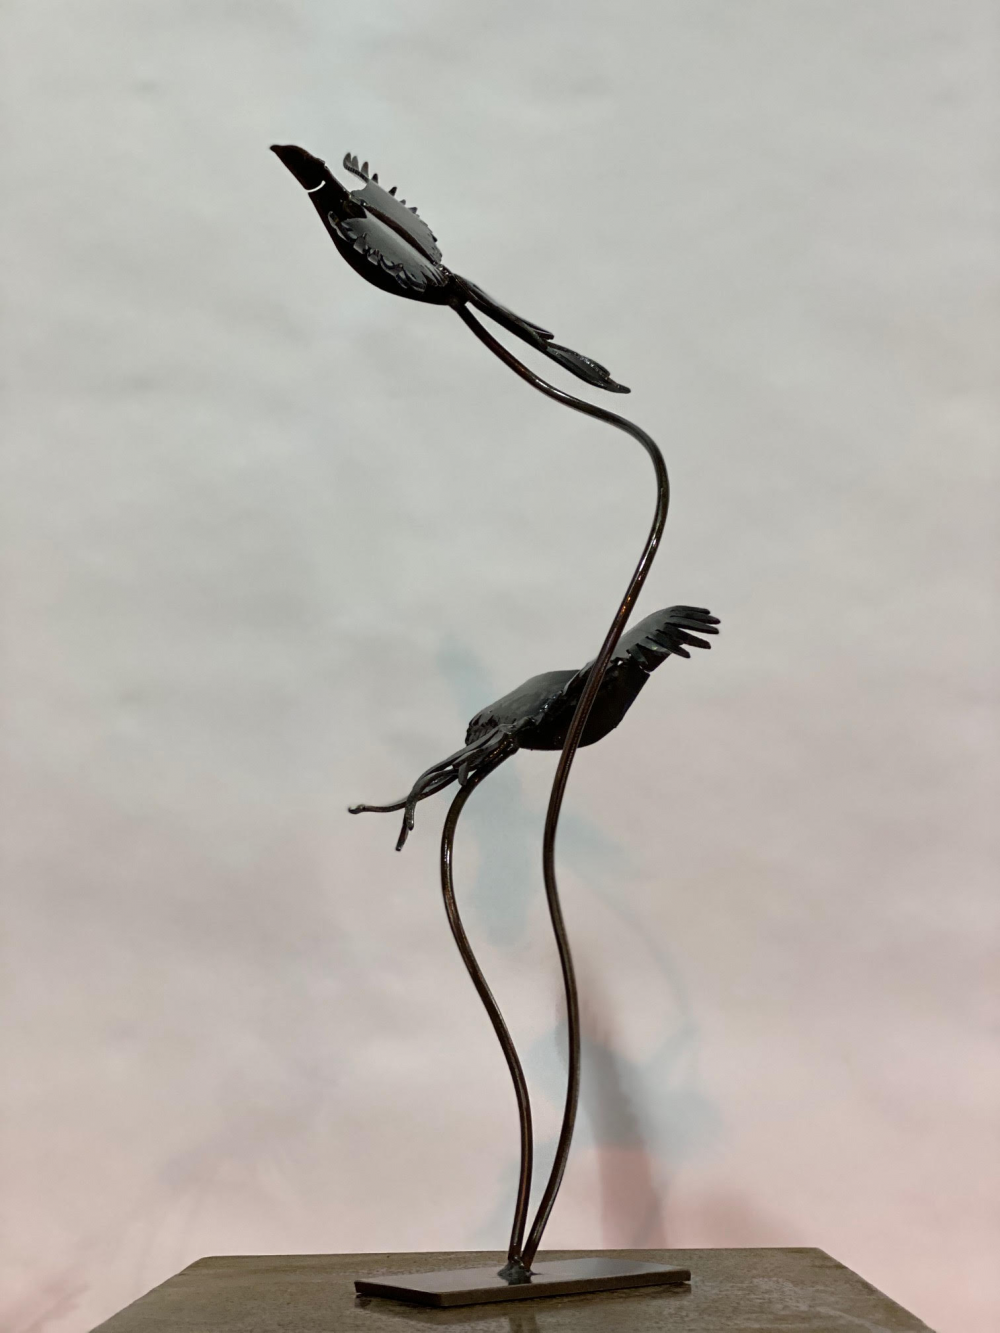 Birds Sculpture With Cloudy Background